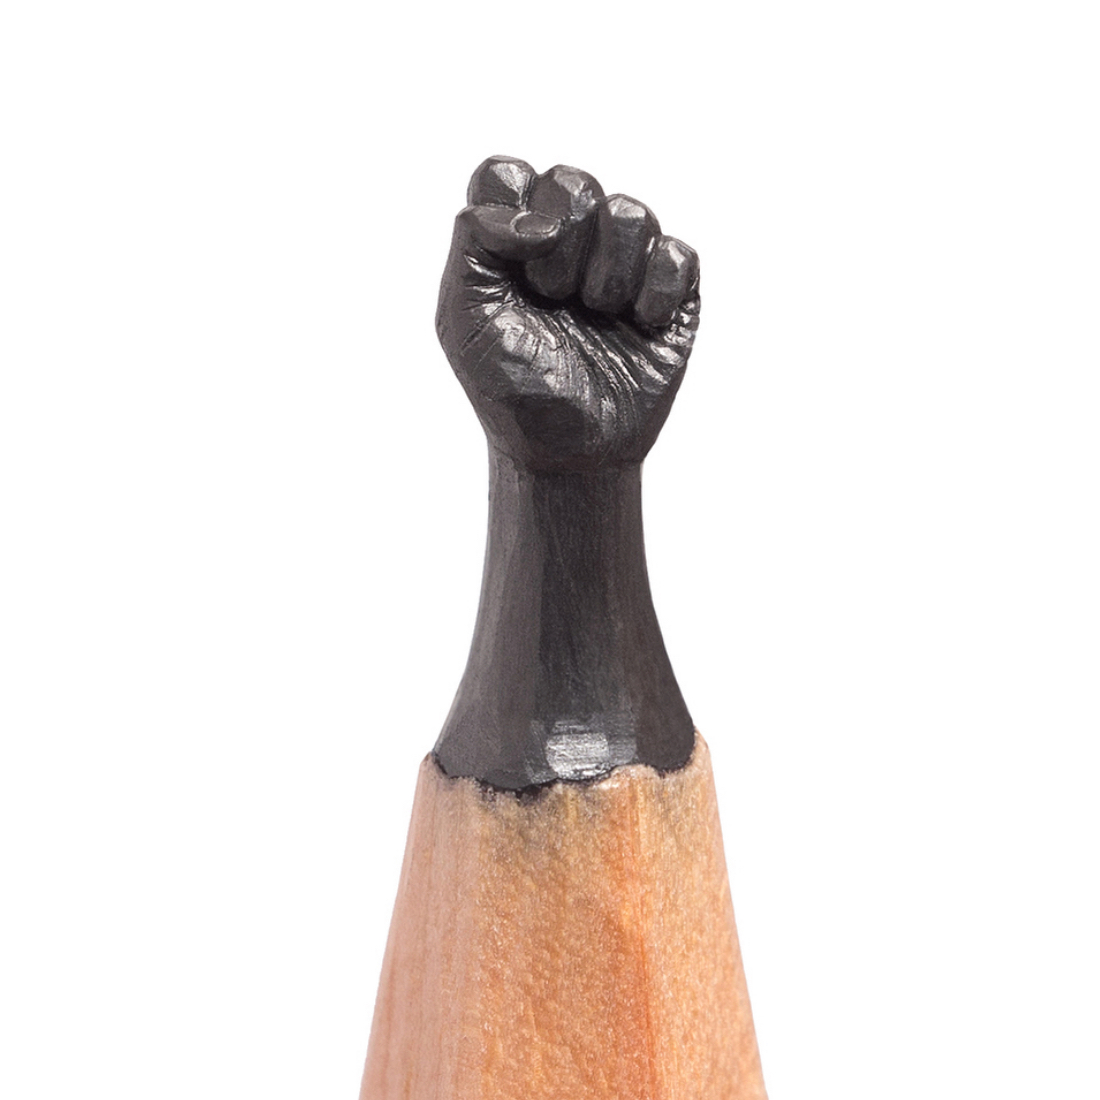 Remarkably detailed tiny sculptures on the tips of pencils